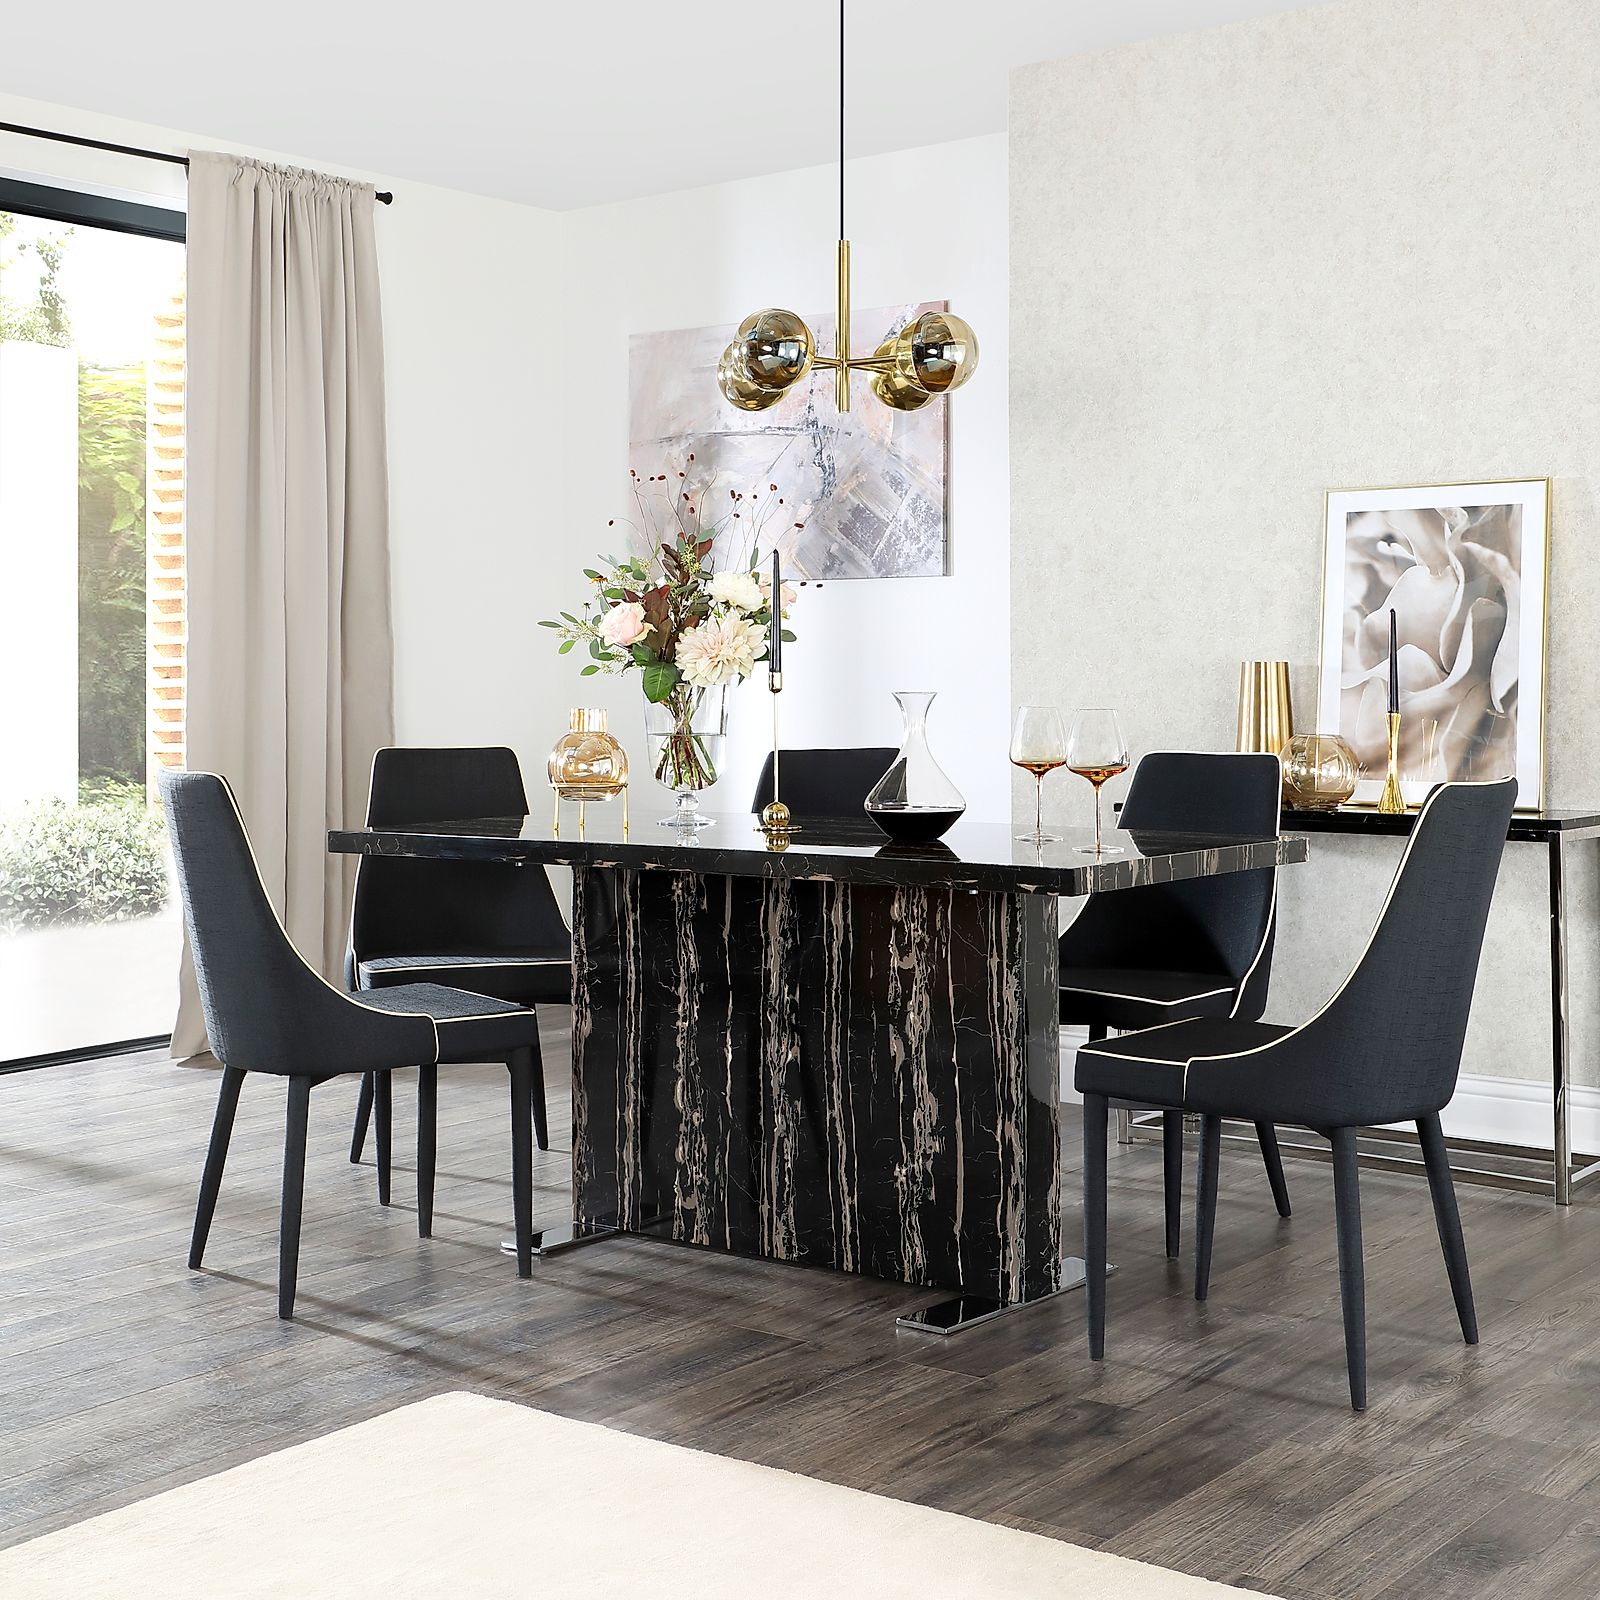 Marble Dining Table And 6 Chairs: Magnus Black Marble Dining Table With 6 Modena Black